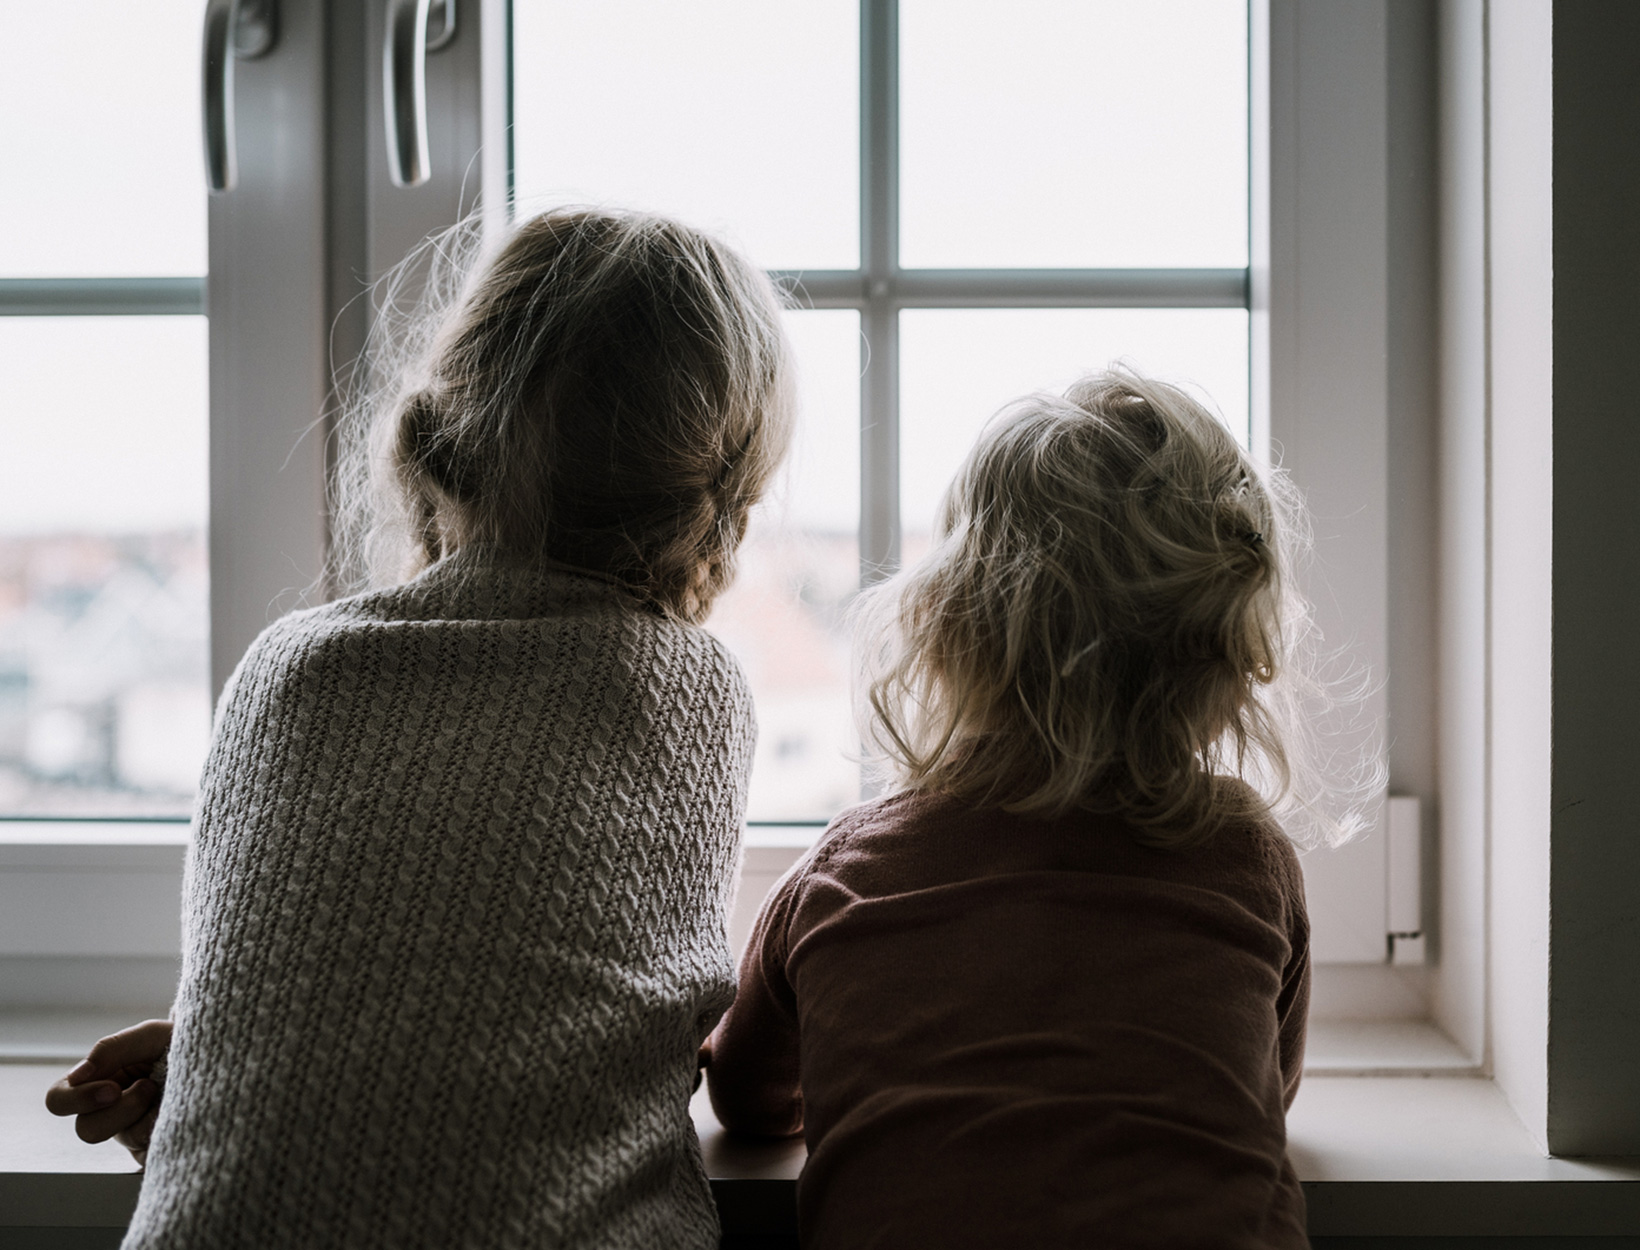 two children looking out window